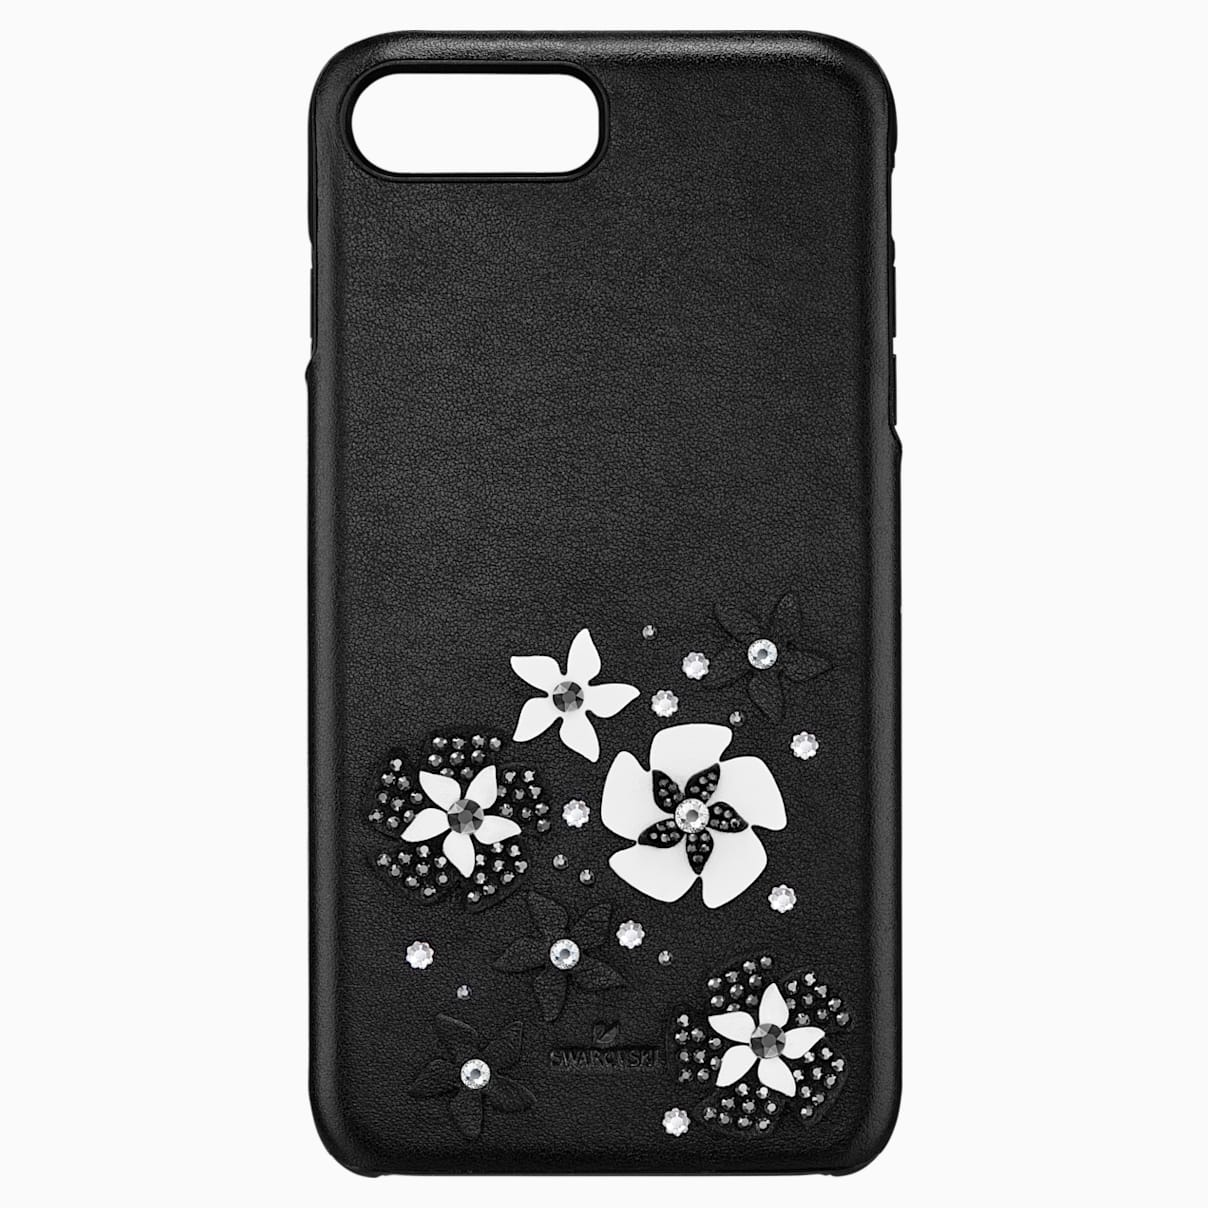 Custodia smartphone con bordi protettivi integrati Mazy, iPhone® 8 Plus, nero